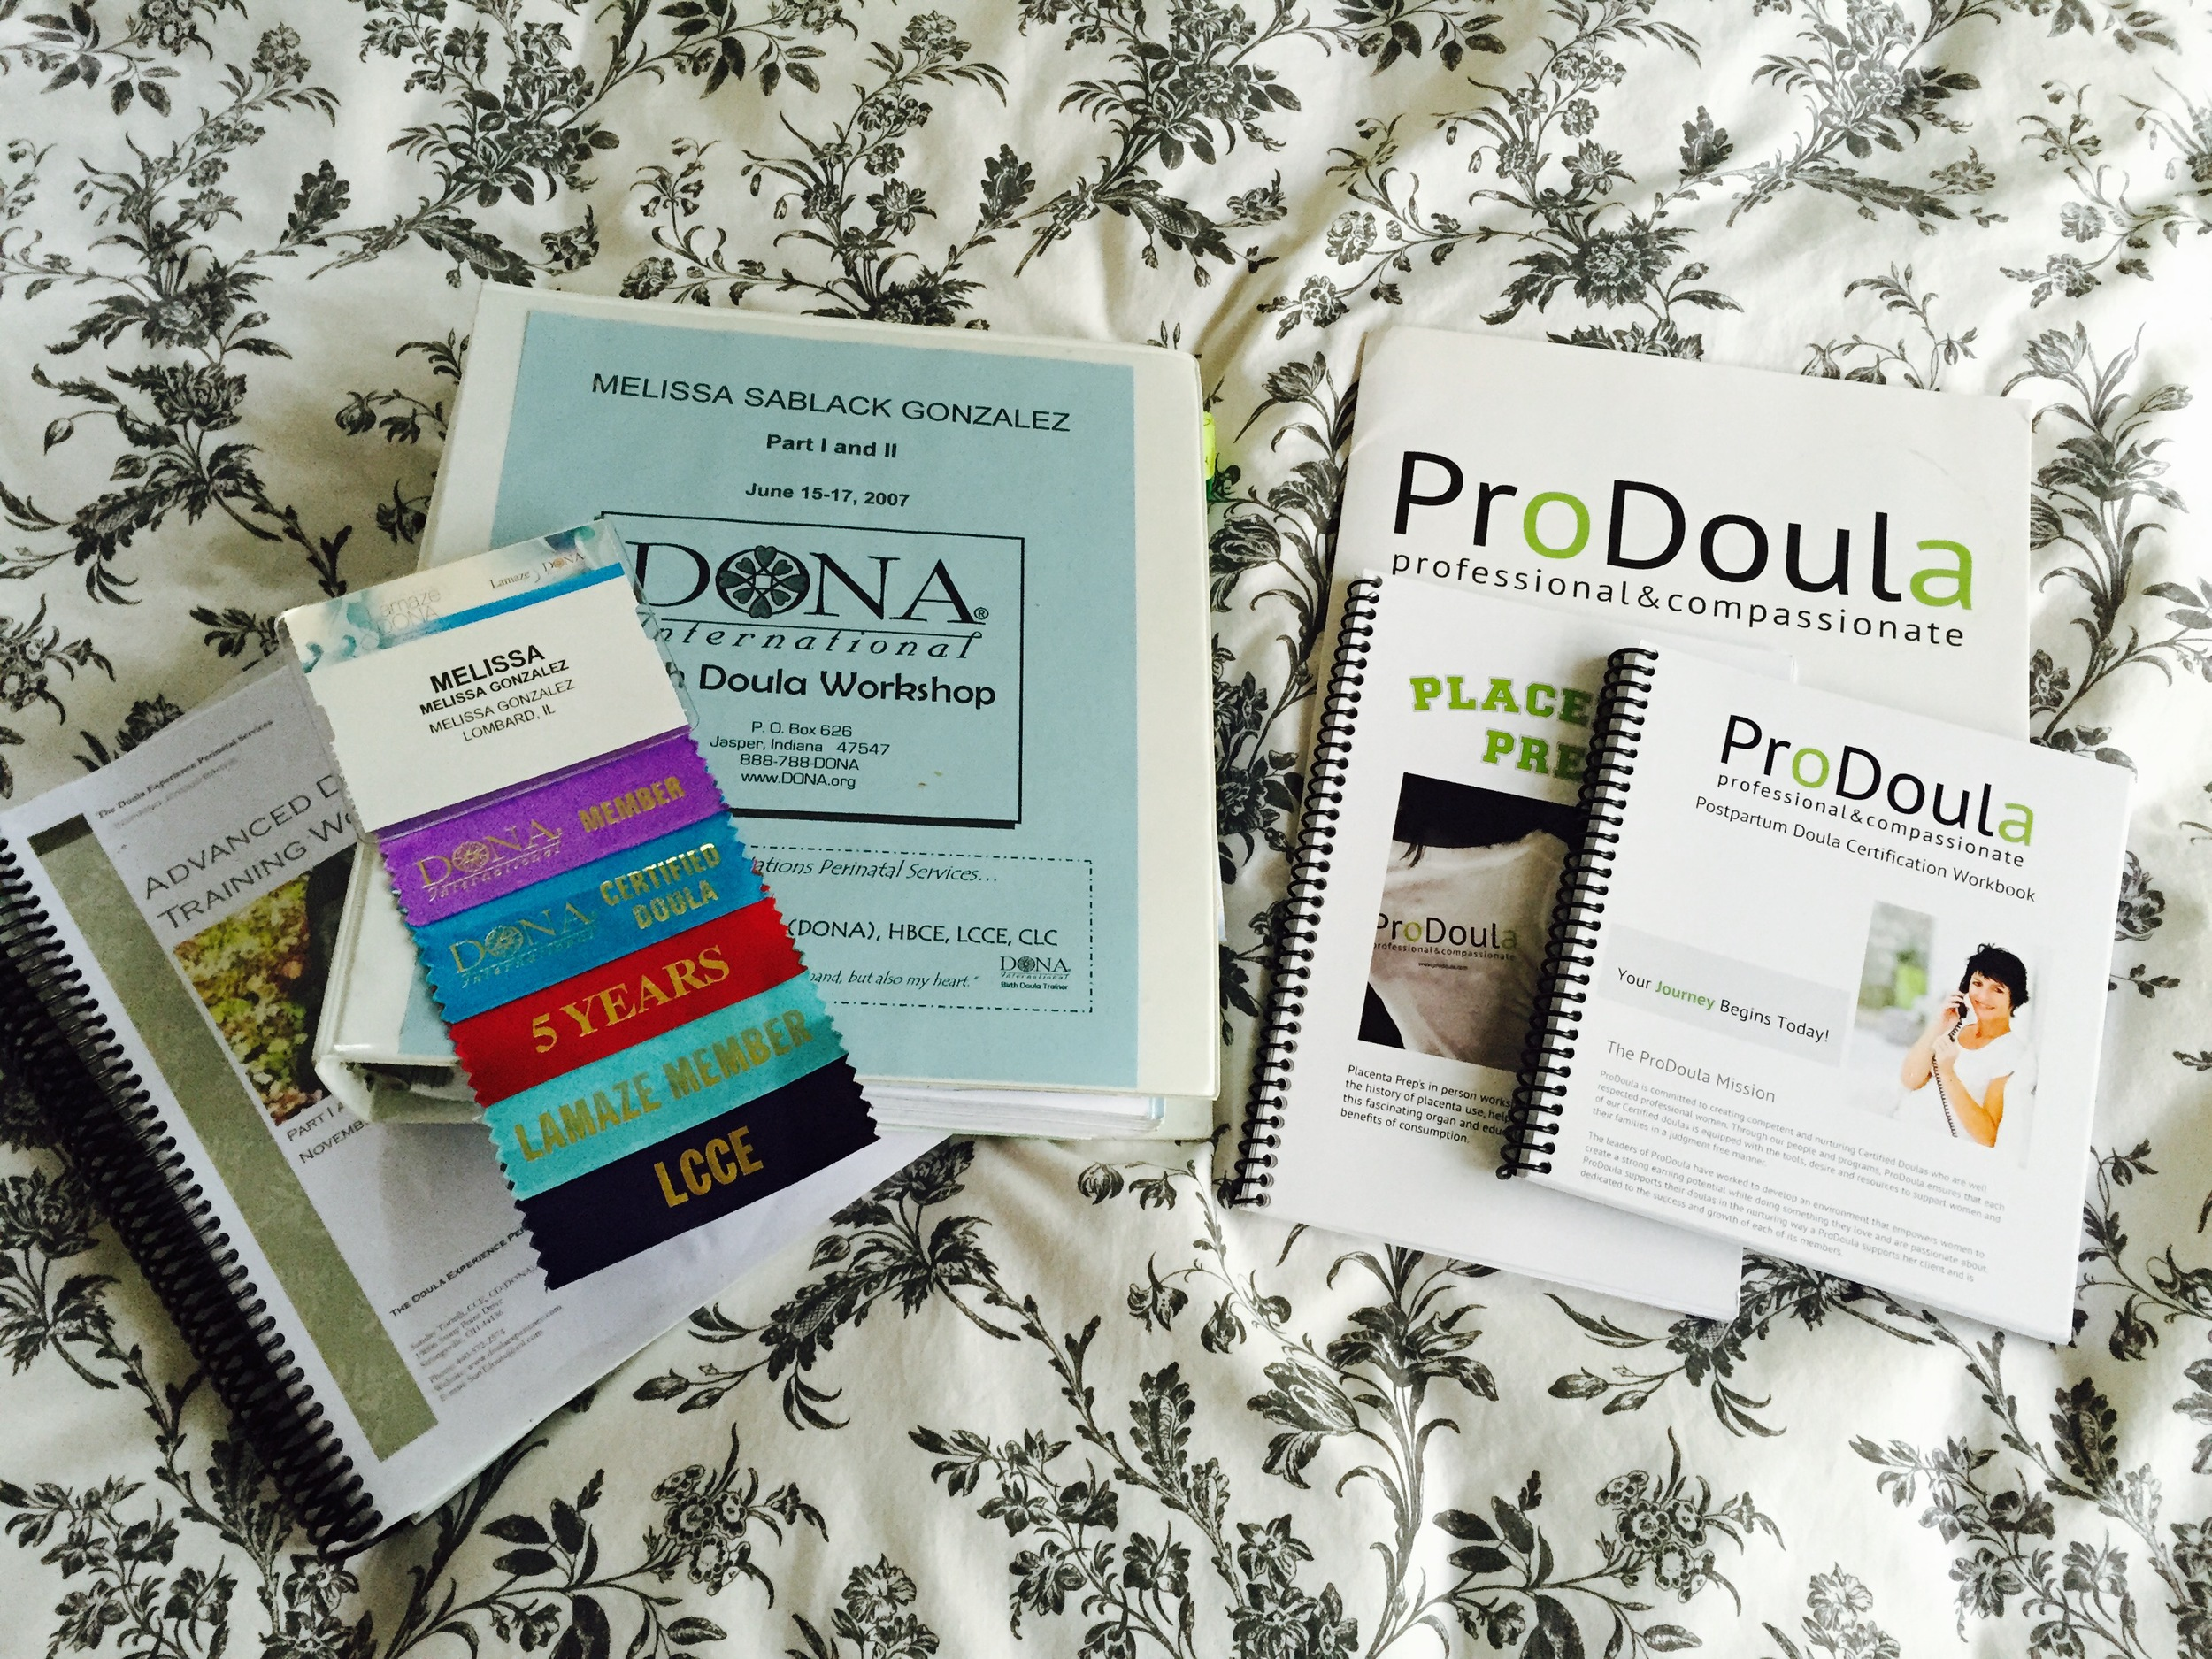 DONA-and-ProDoula-materials.jpg